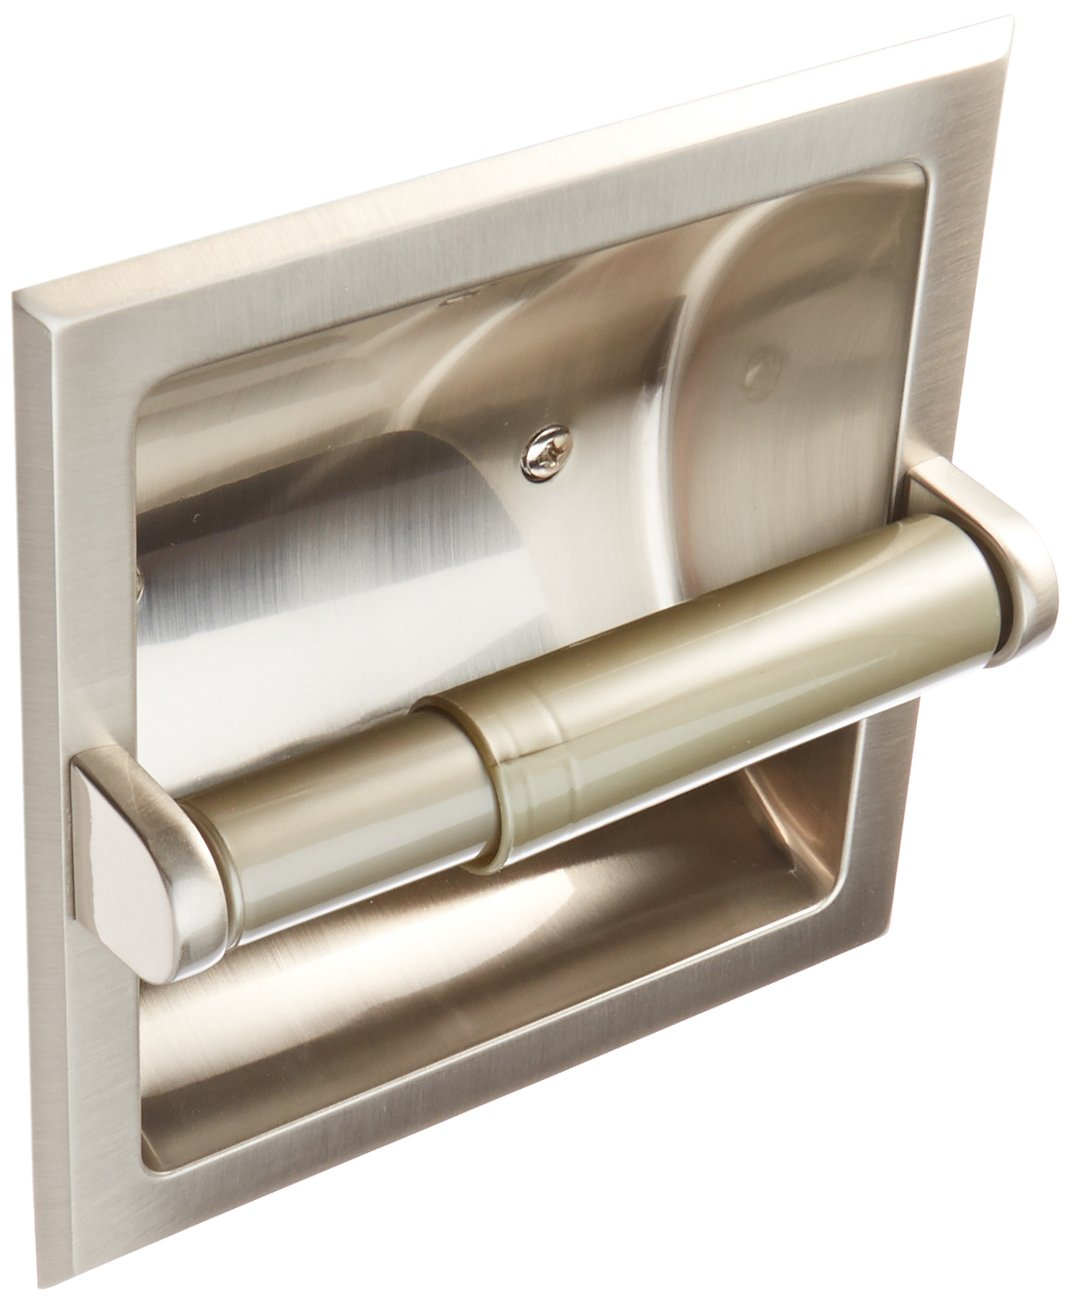 MINTCRAFT 776H-07-SOU Paper Holder Recess, Brushed Nickel